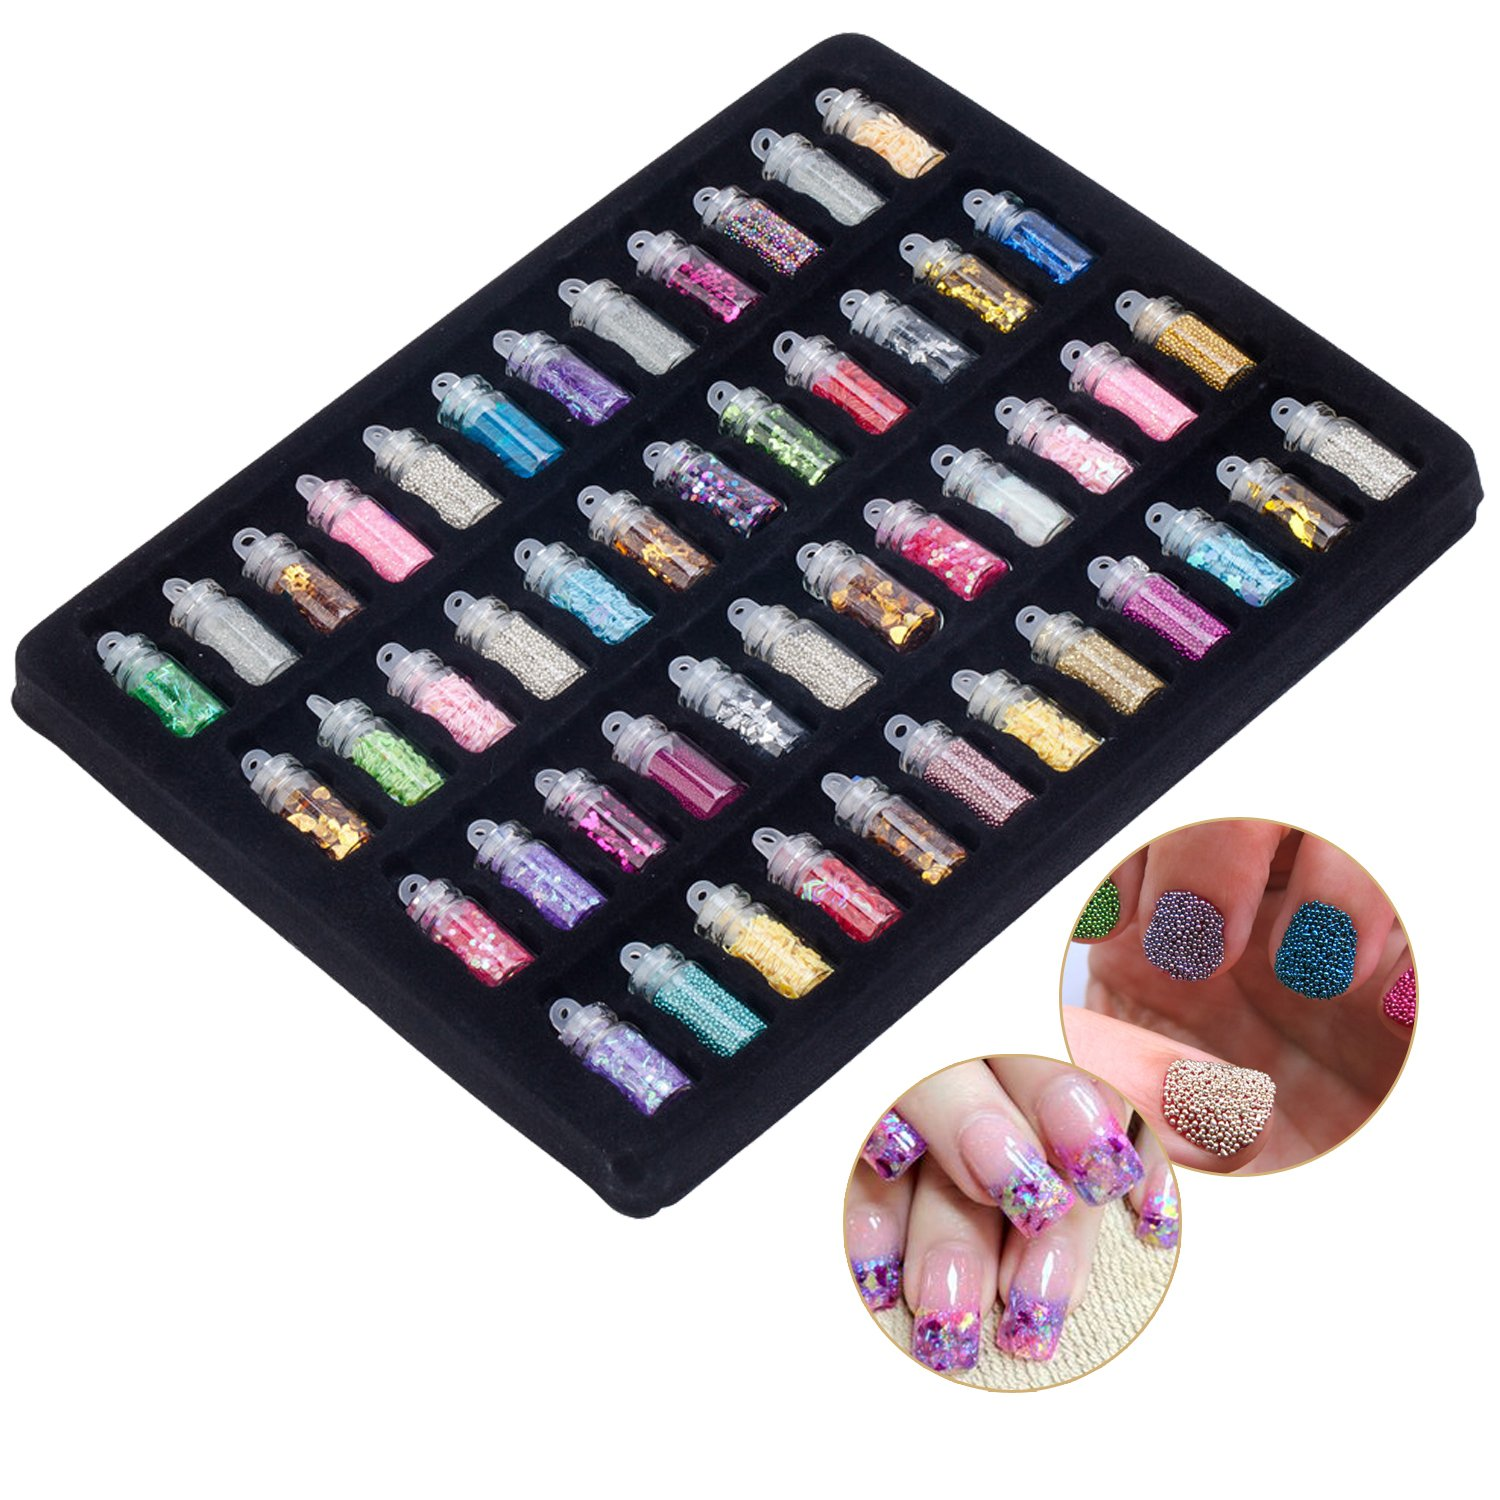 Fantastic Deal Set of 48 Bottles With Colourful Premium Quality Manicure Nail Art Glitters / Paillettes, Caviars And Other Sparkly Decorations By VAGA